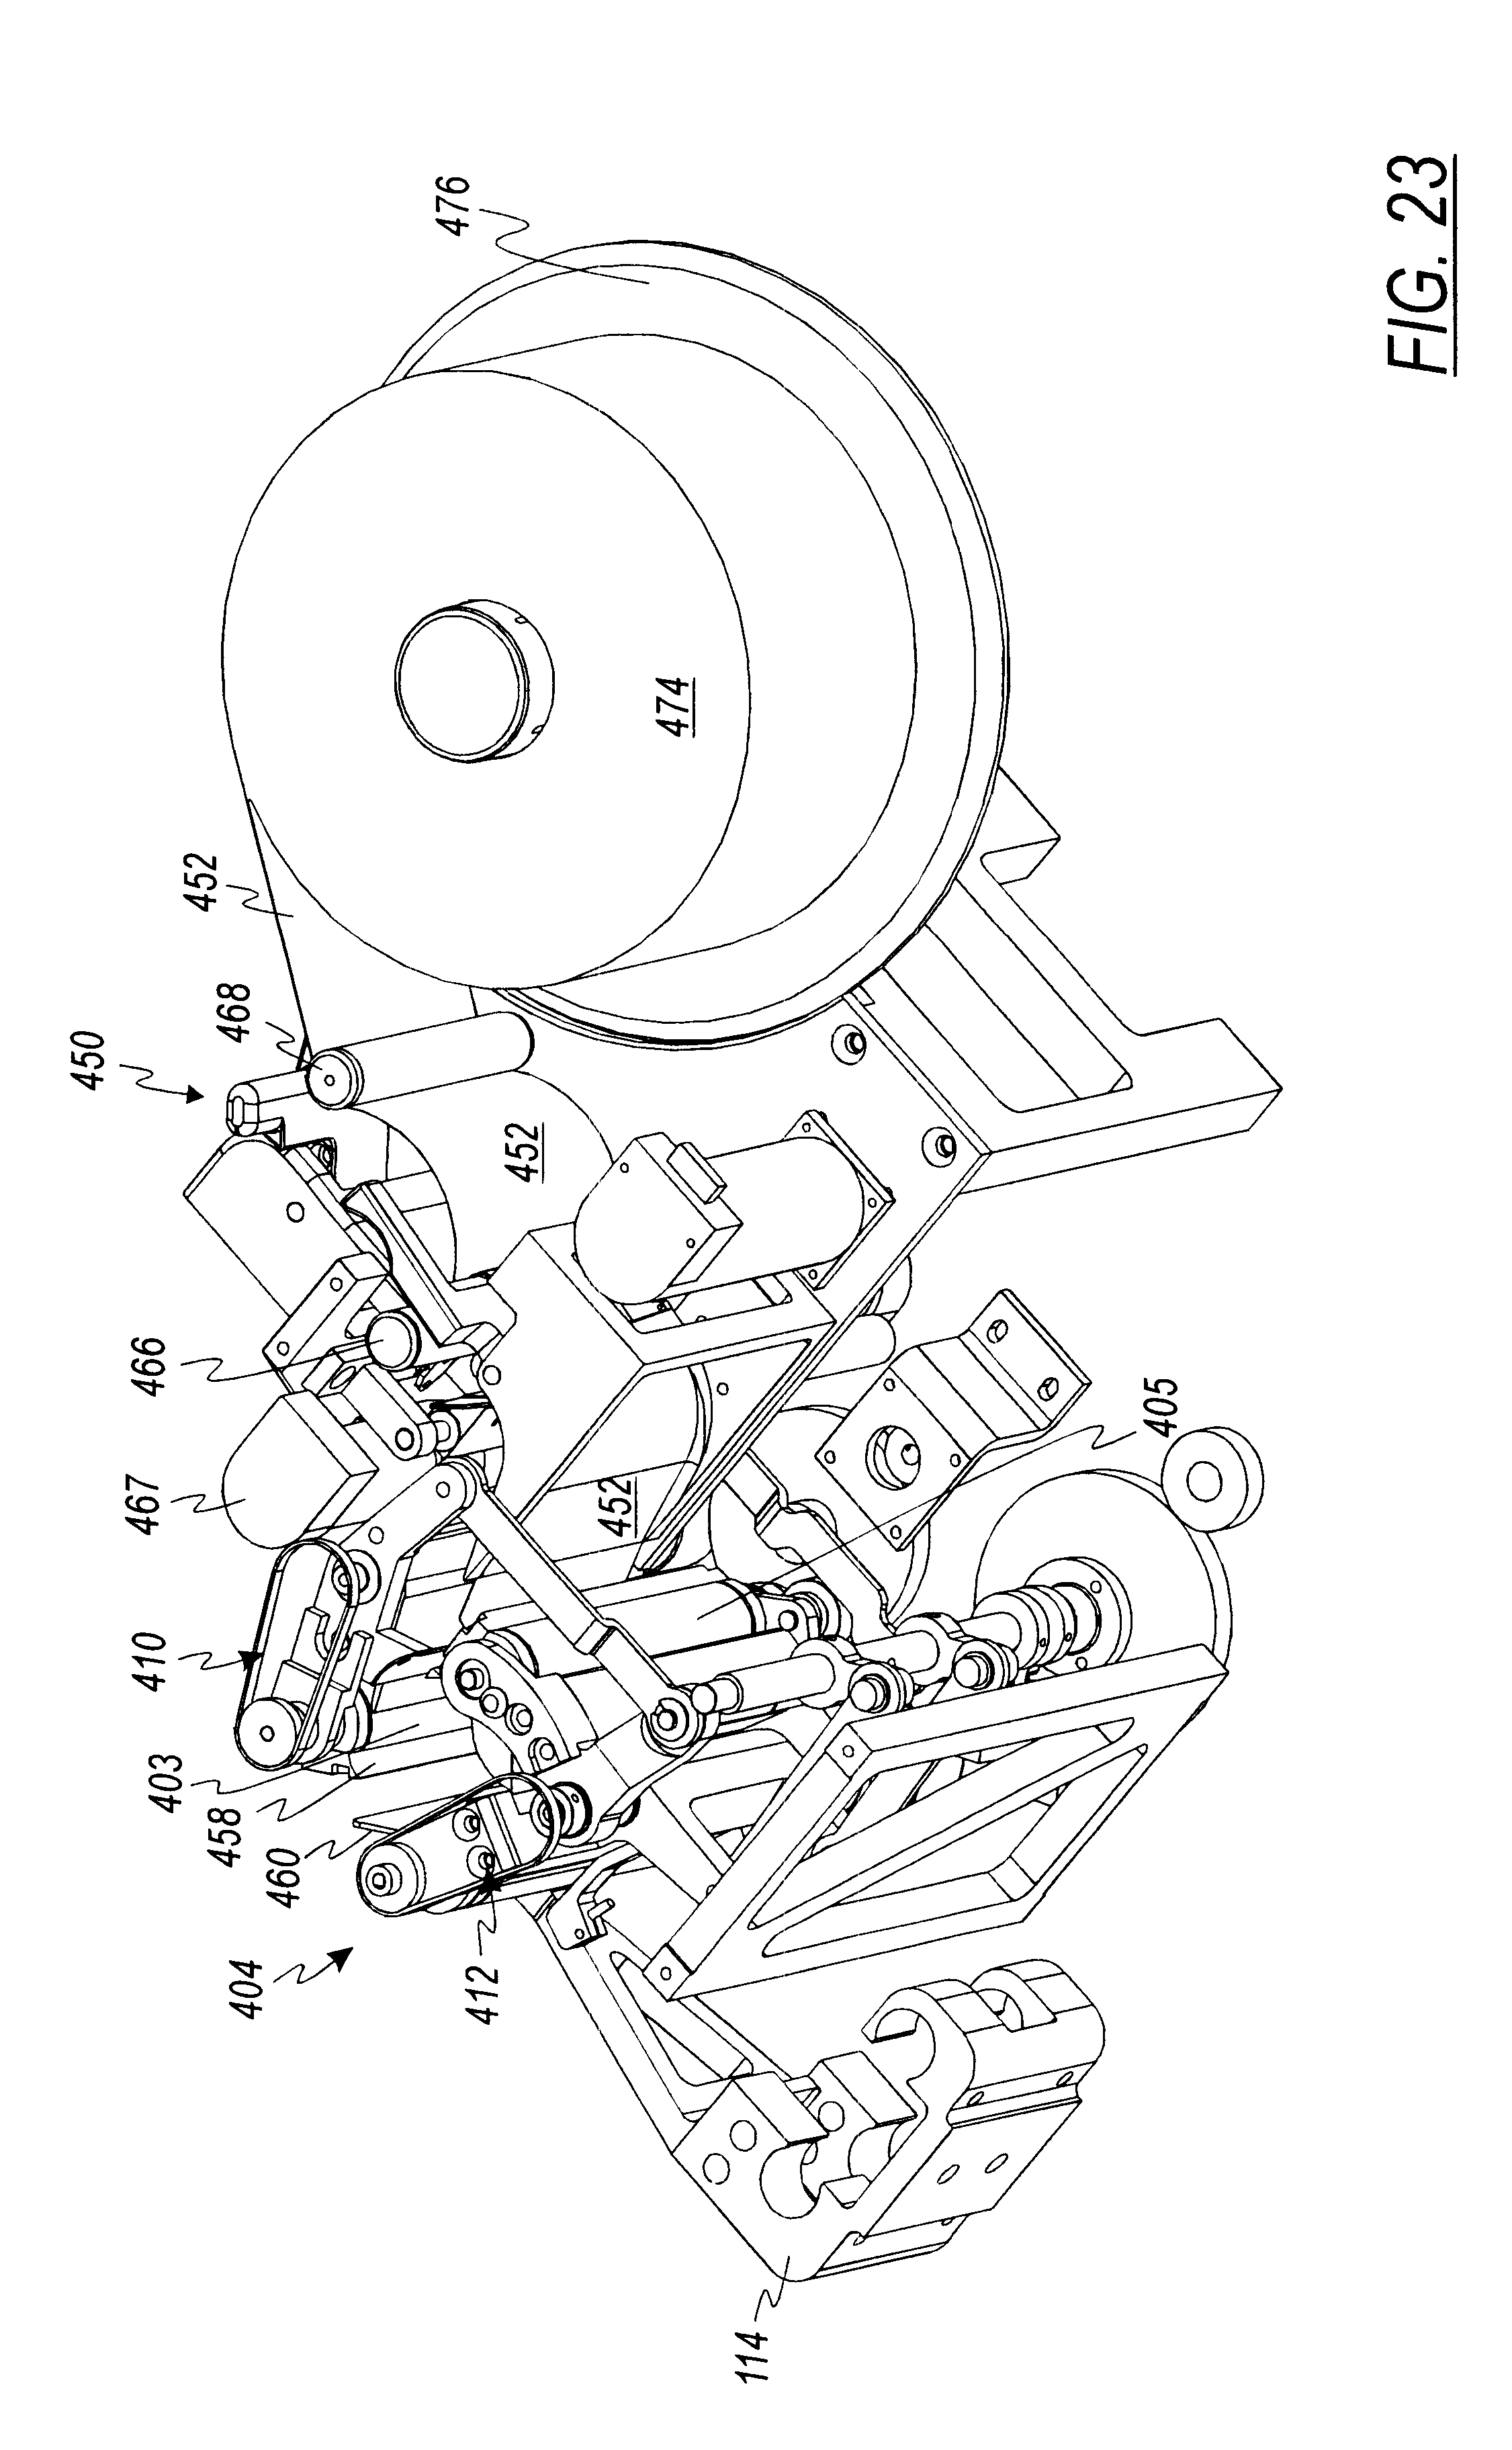 Patent Us6499277 Coin Wrapper Google Patents Sears Suburban 15 Tractor Wiring Diagram Drawing